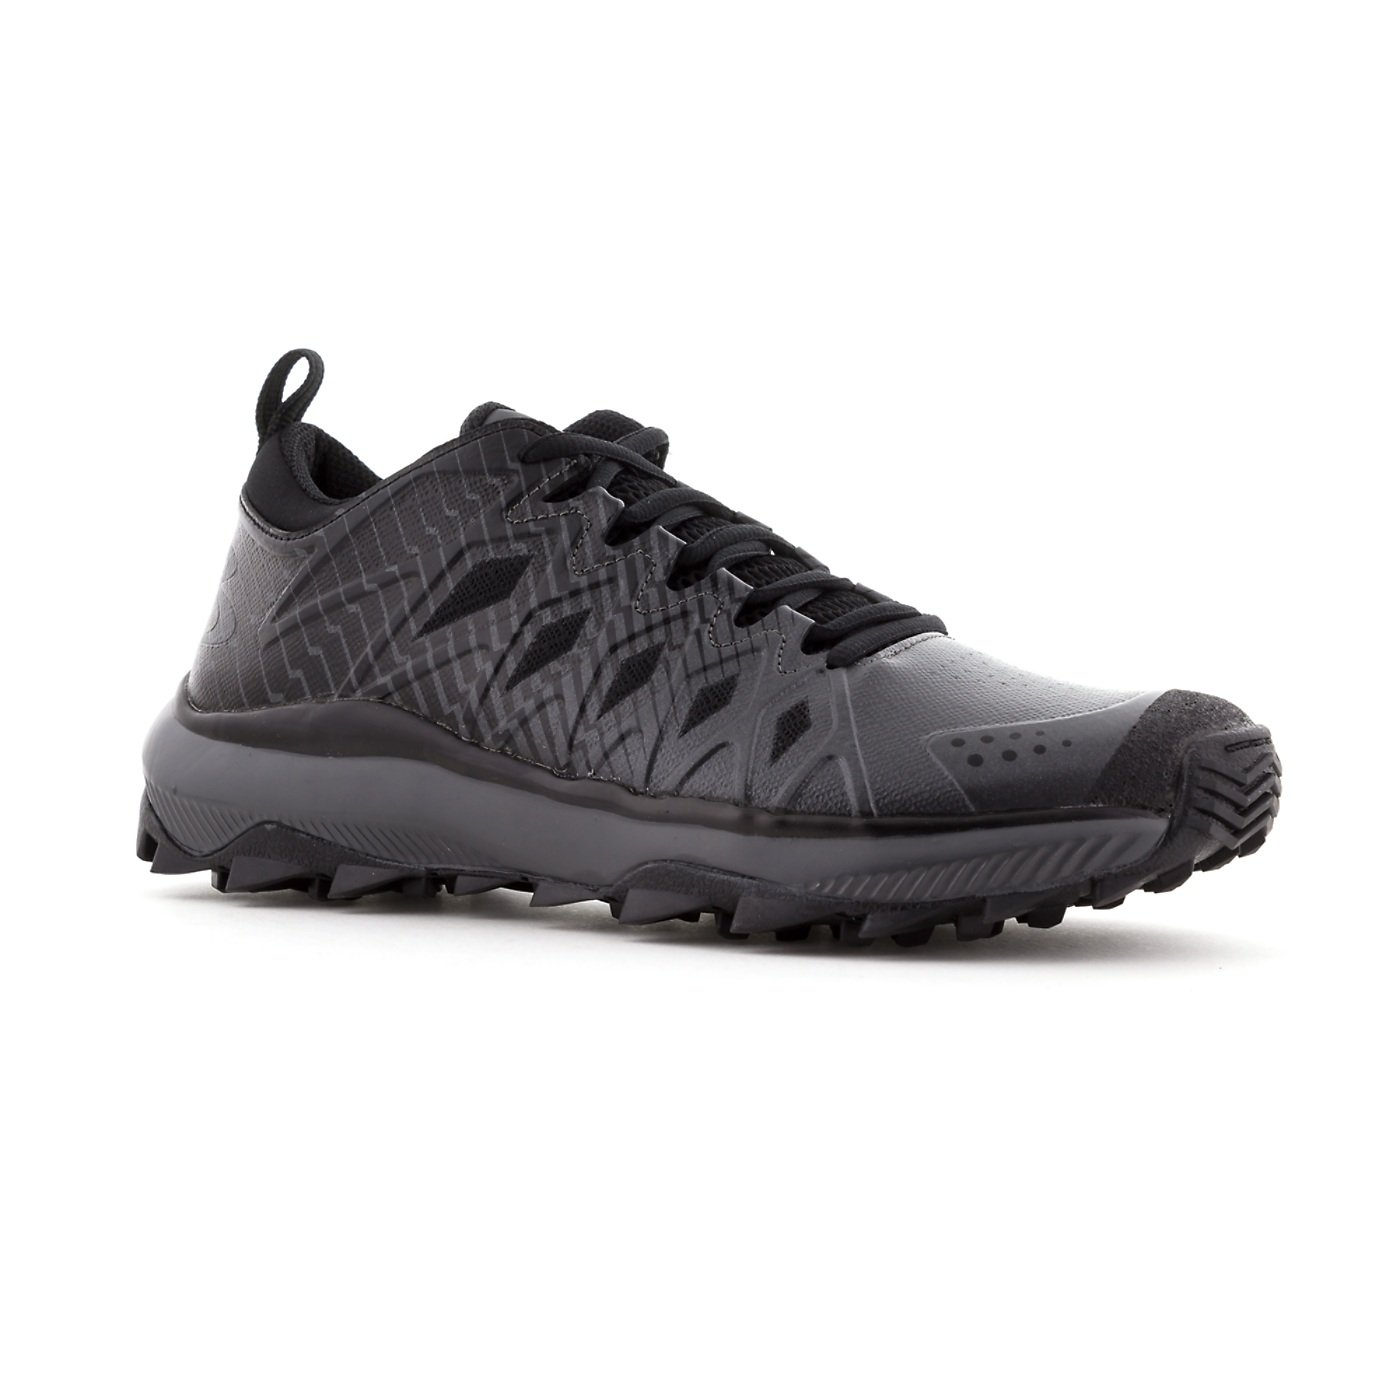 0629176271a3 Amazon.com  Boombah Men s Squadron Turf Shoes - 20 Color Options - Multiple  Sizes  Sports   Outdoors